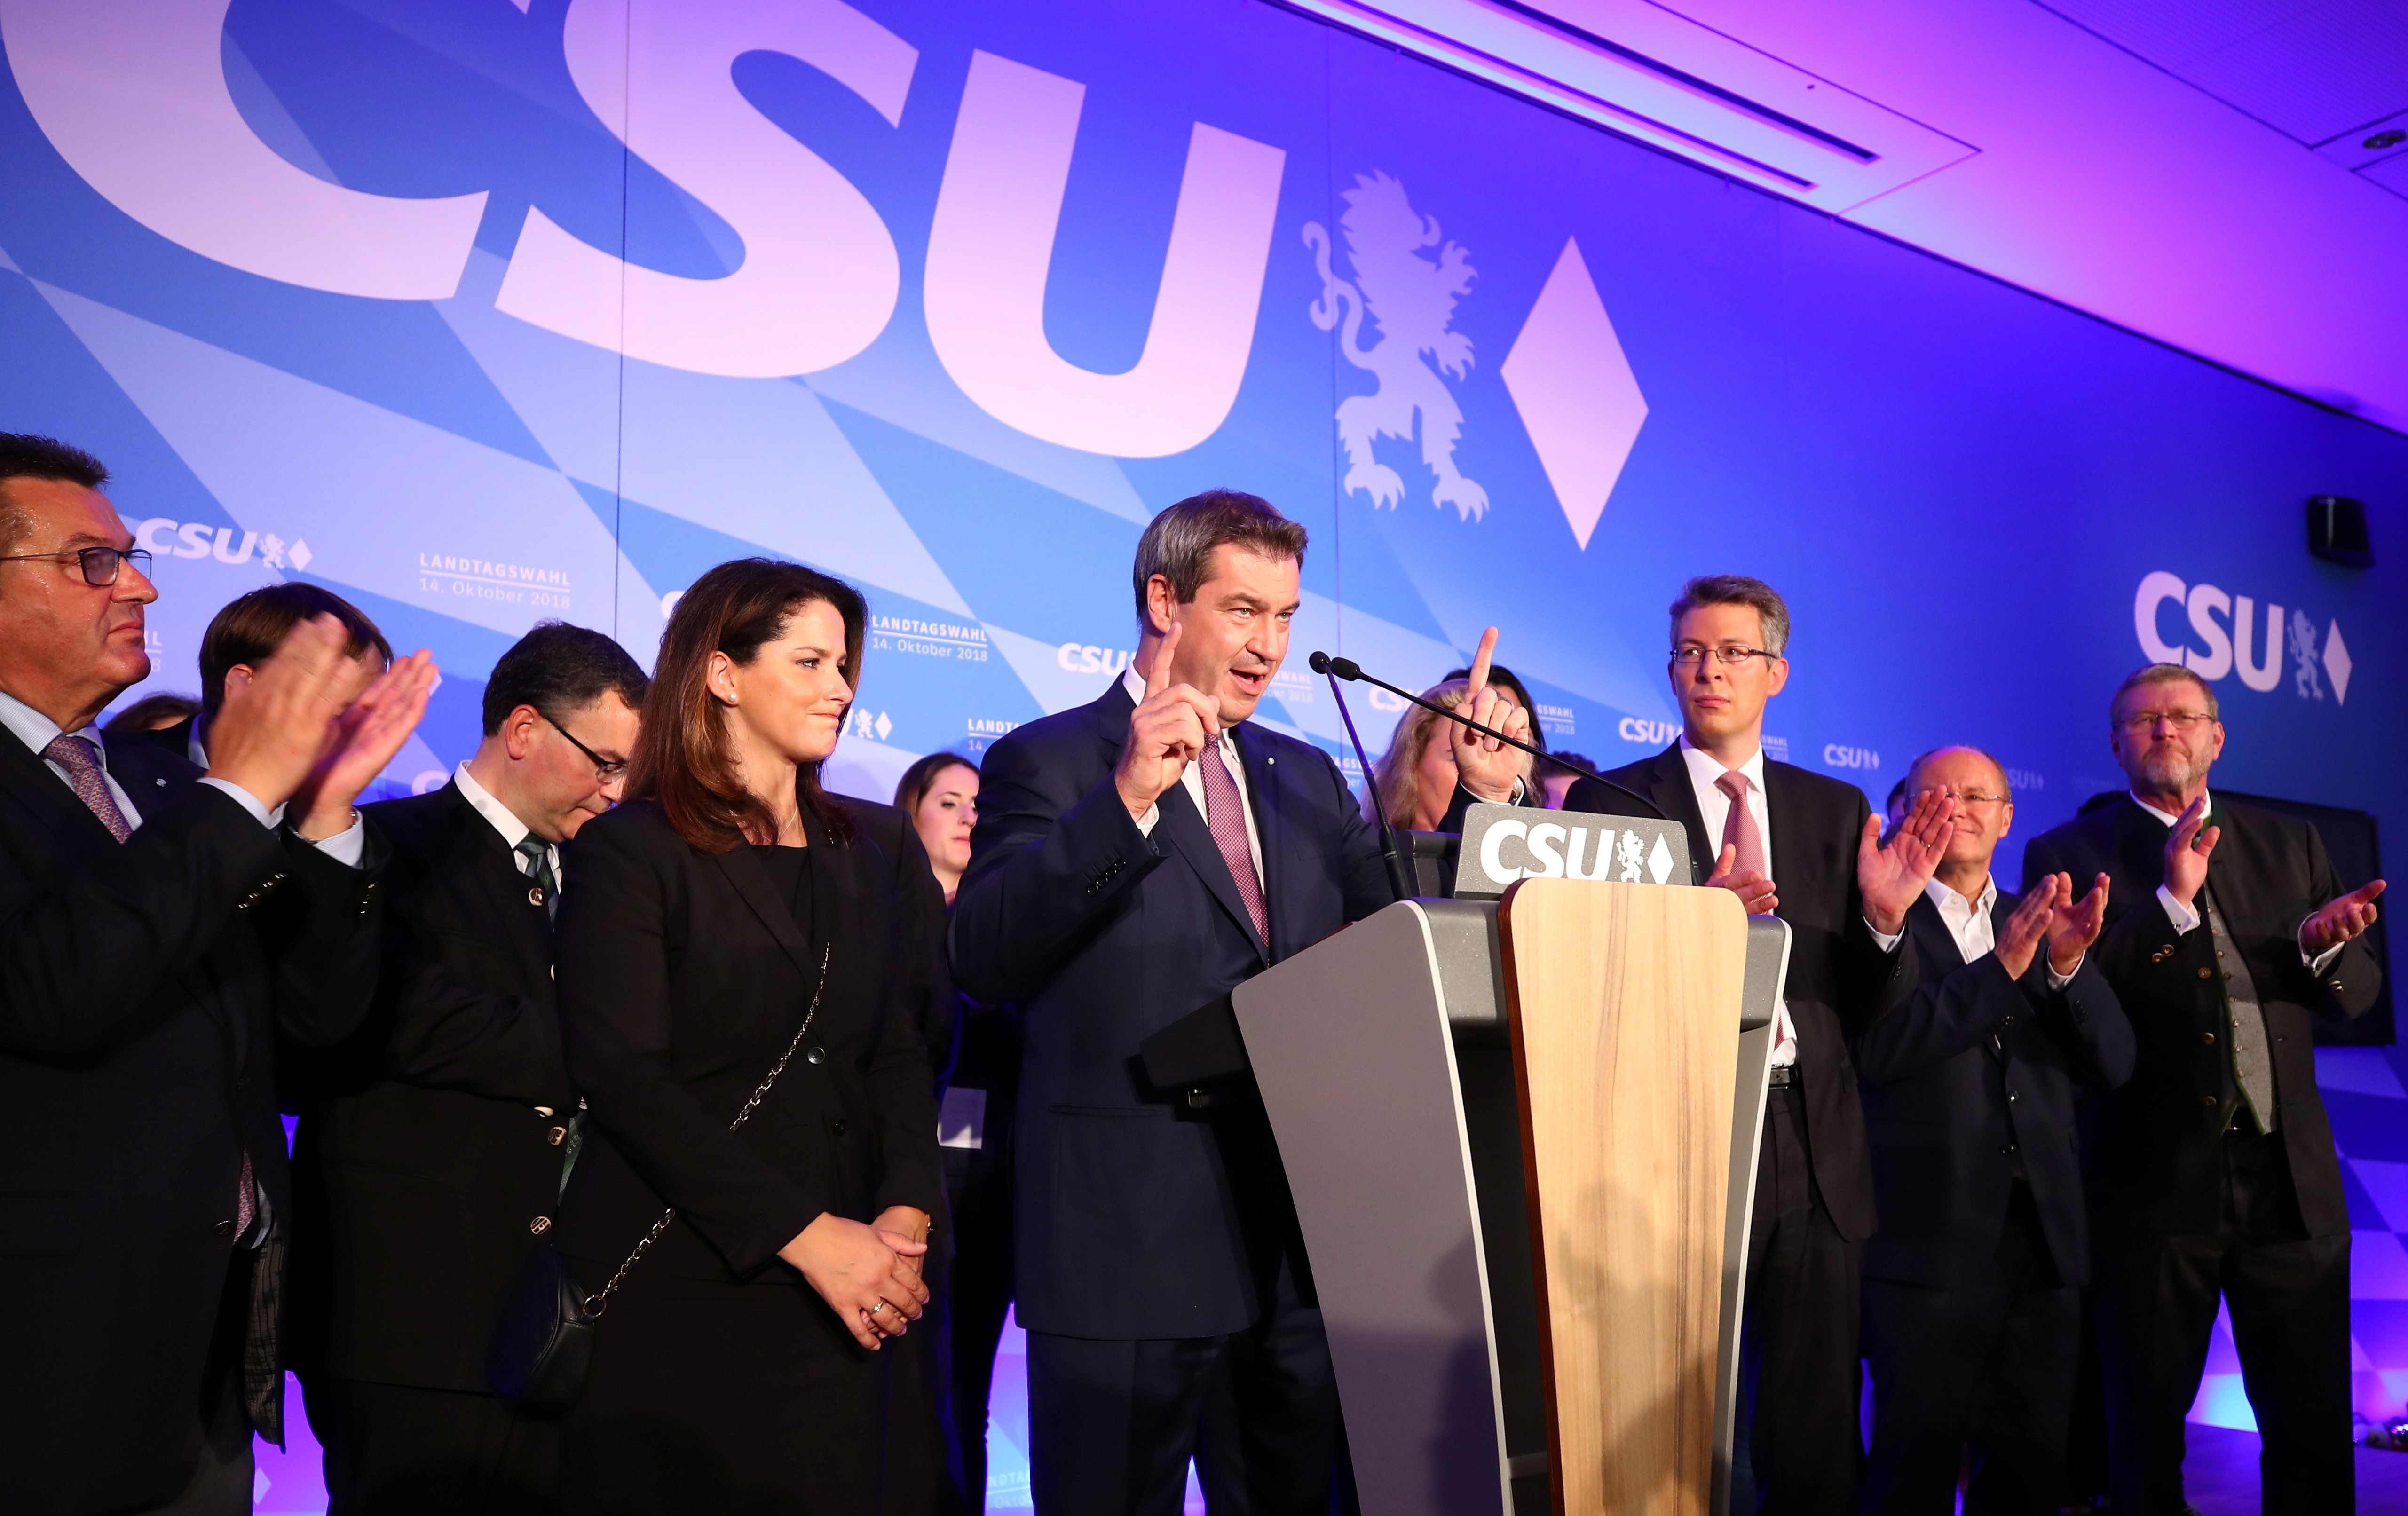 Bavarian State Prime Minister Markus Soeder of the Christian Social Union Party (CSU) reacts after first exit polls in the Bavarian state election in Munich, Germany, October 14, 2018. REUTERS/Michael Dalder